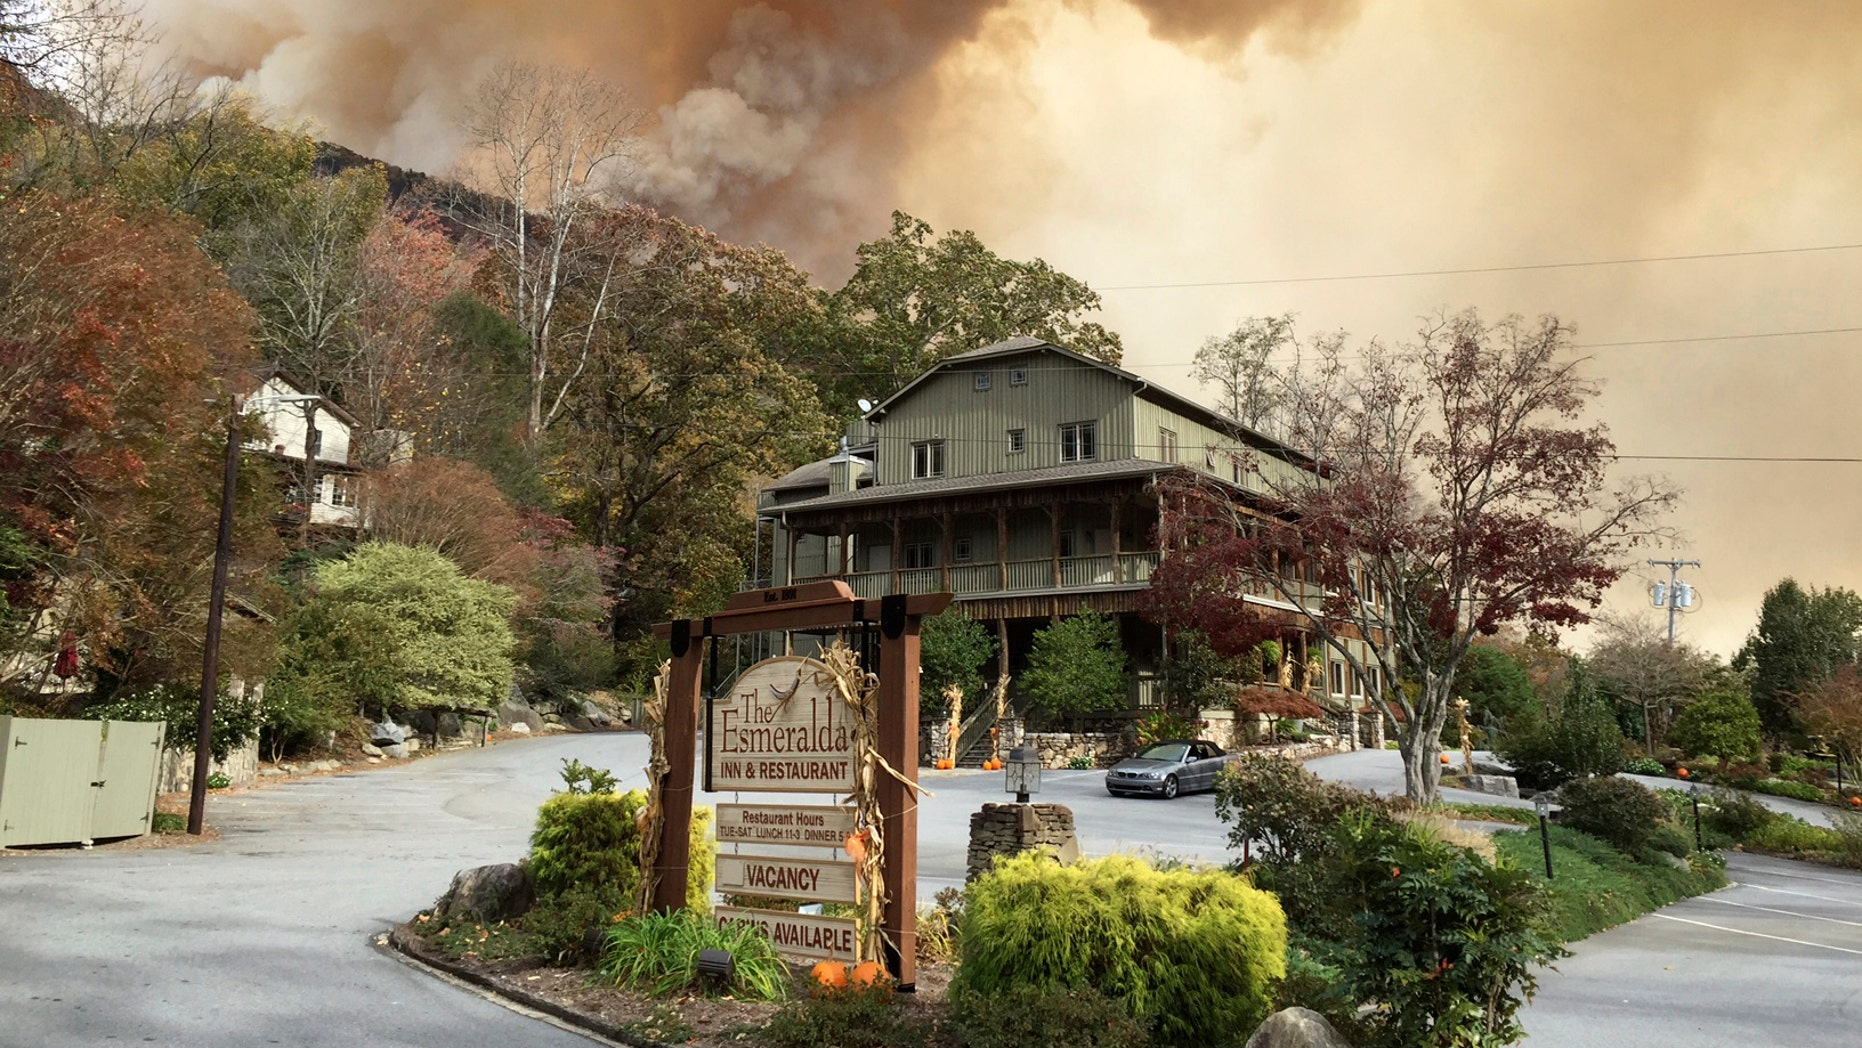 This photo made available by Don Cason shows his business, The Esmeralda Inn and Restaurant, which was evacuated due to the proximity of wildfires, Friday, Nov. 11, 2016 in Lake Lure, N.C. Cason had his 125-year-old inn in the western North Carolina mountains booked solid, rooms full and restaurant reservations lined up, for Veterans Day weekend.  (Don Cason via AP)